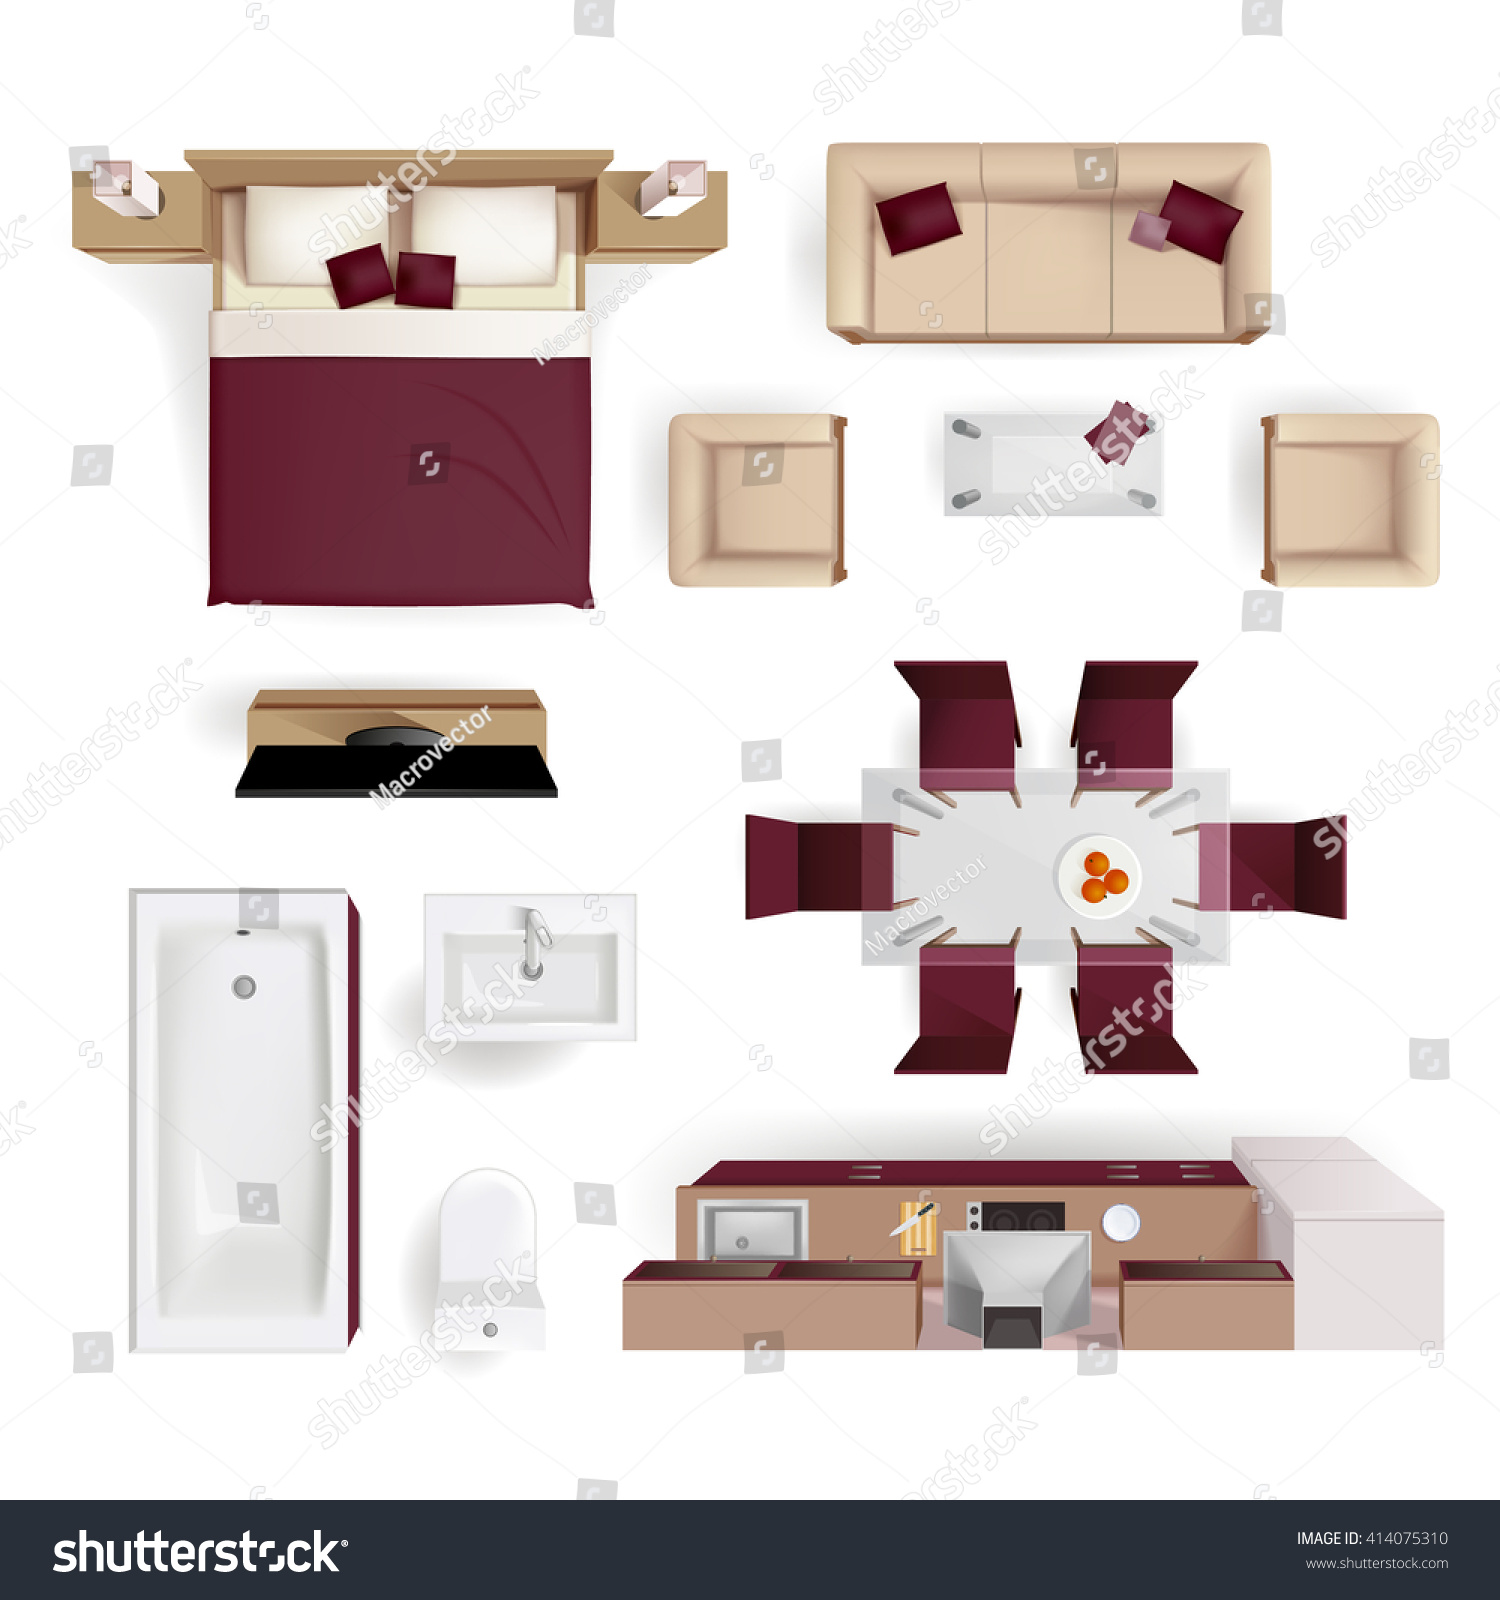 Modern Apartment Living Room Bedroom And Bathroom Furniture Design Elements Top View Image Realistic Vector Illustration